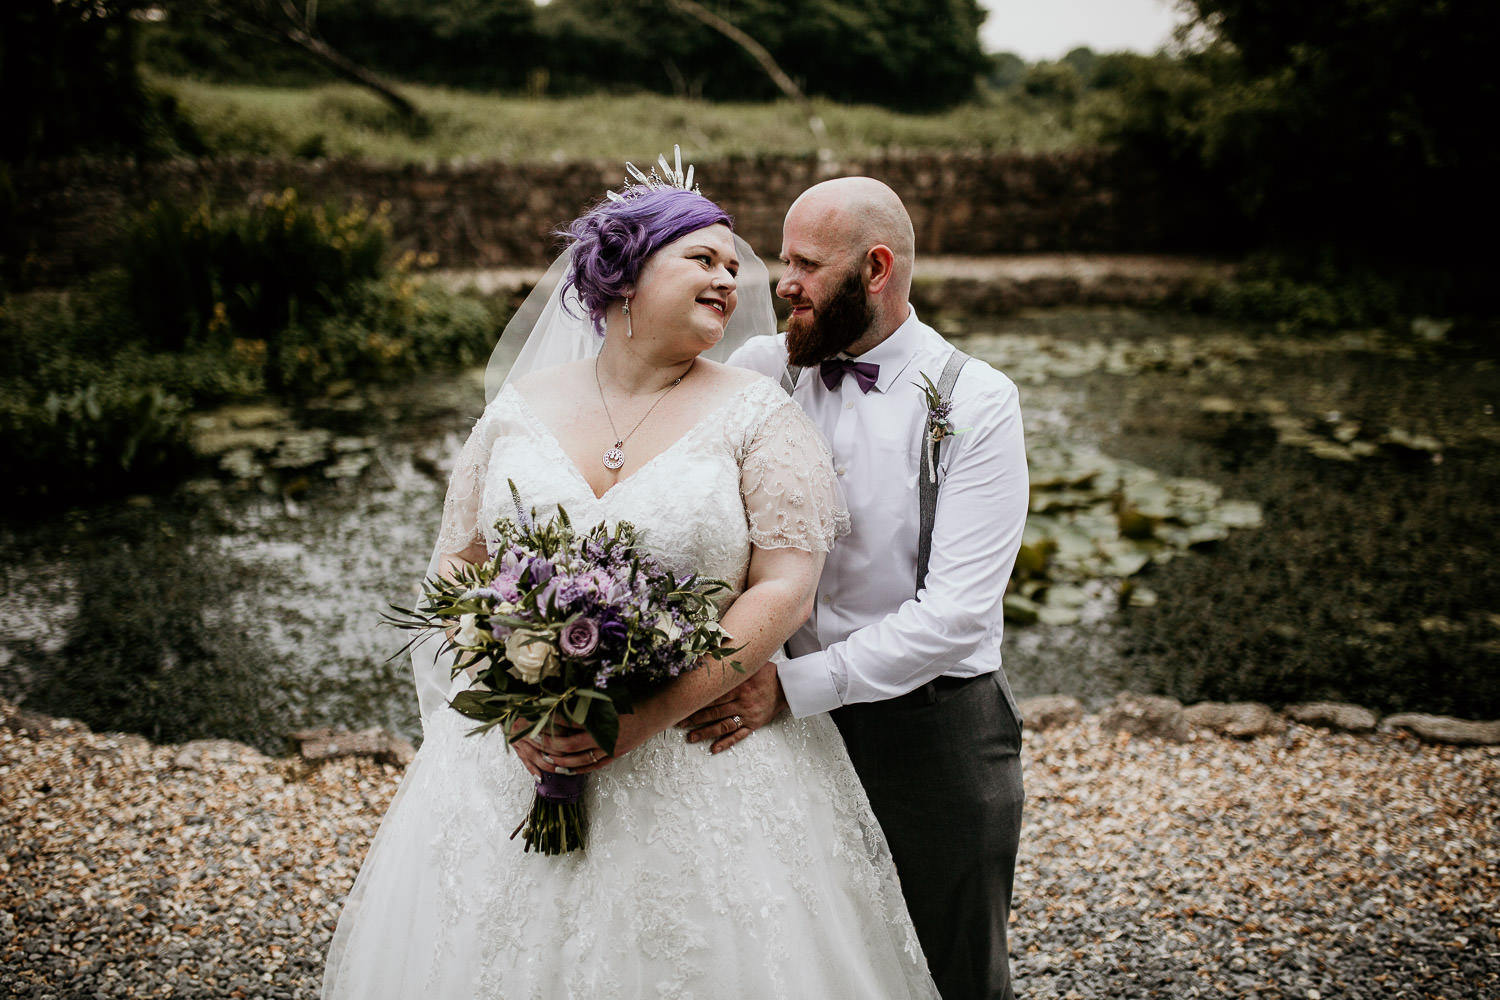 quirky alternative wedding bride and groom outside day time country side location